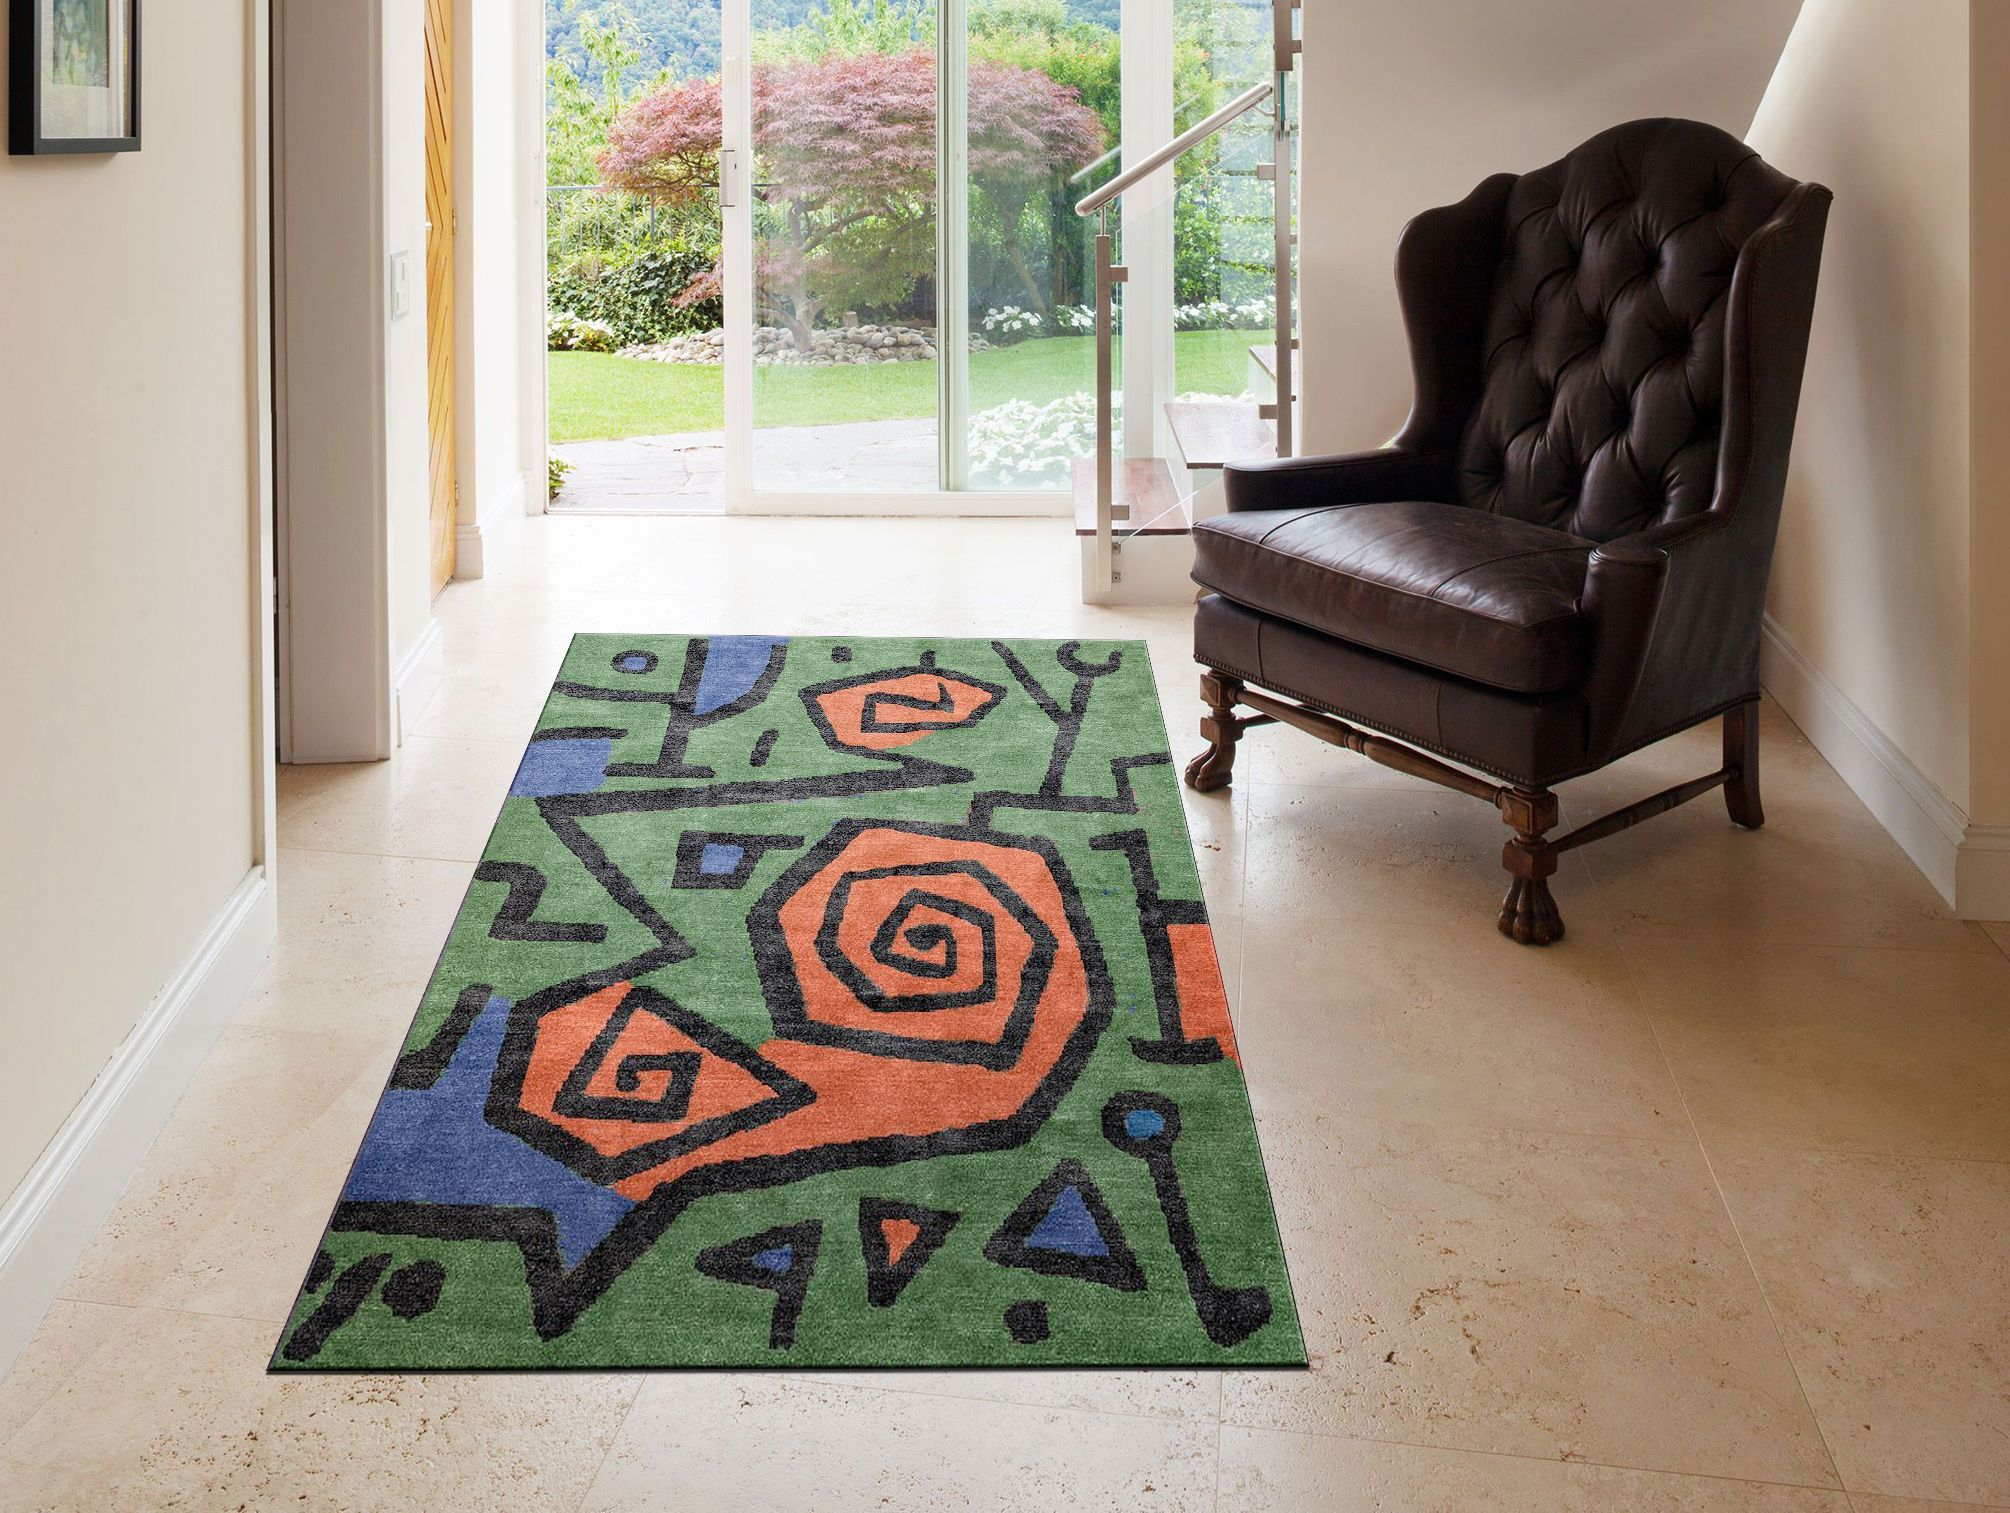 Amazing custom rugs for perfect floor style and design csehwyx